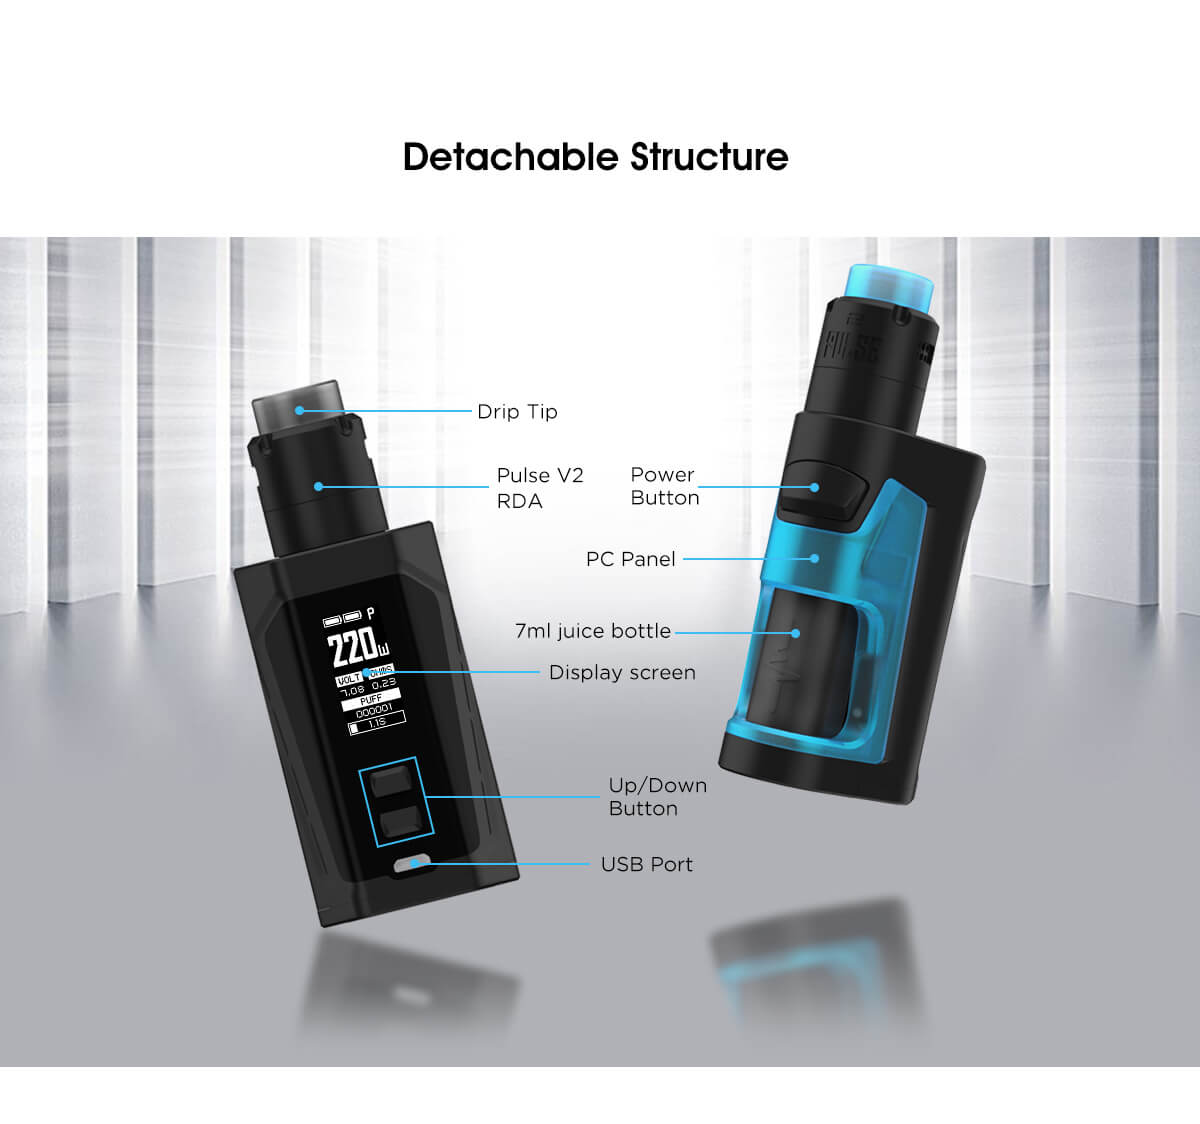 Vandy Vape Pulse Dual Kit Detachable Structure